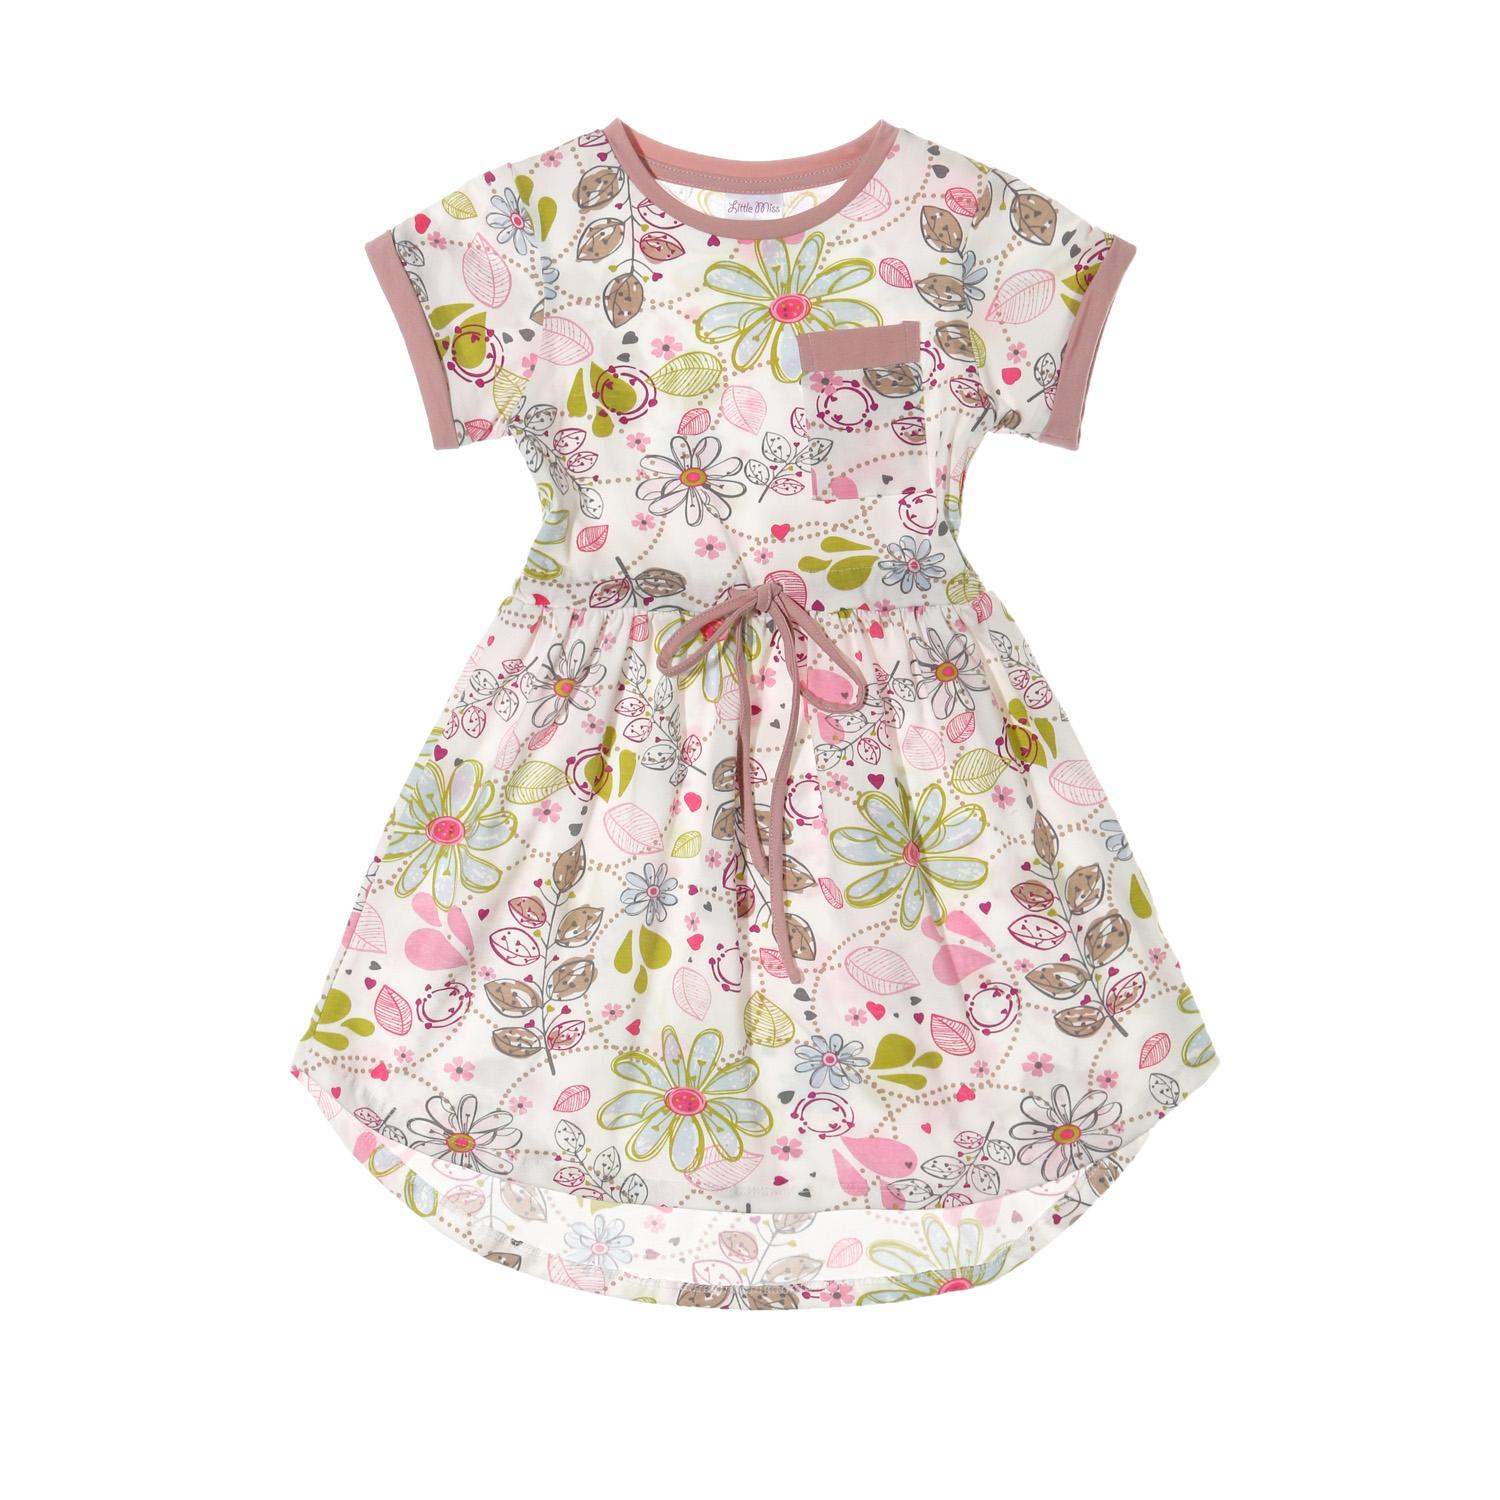 Little Miss Toddler Girls Floral Fit And Flare Dress In White By The Sm Store.